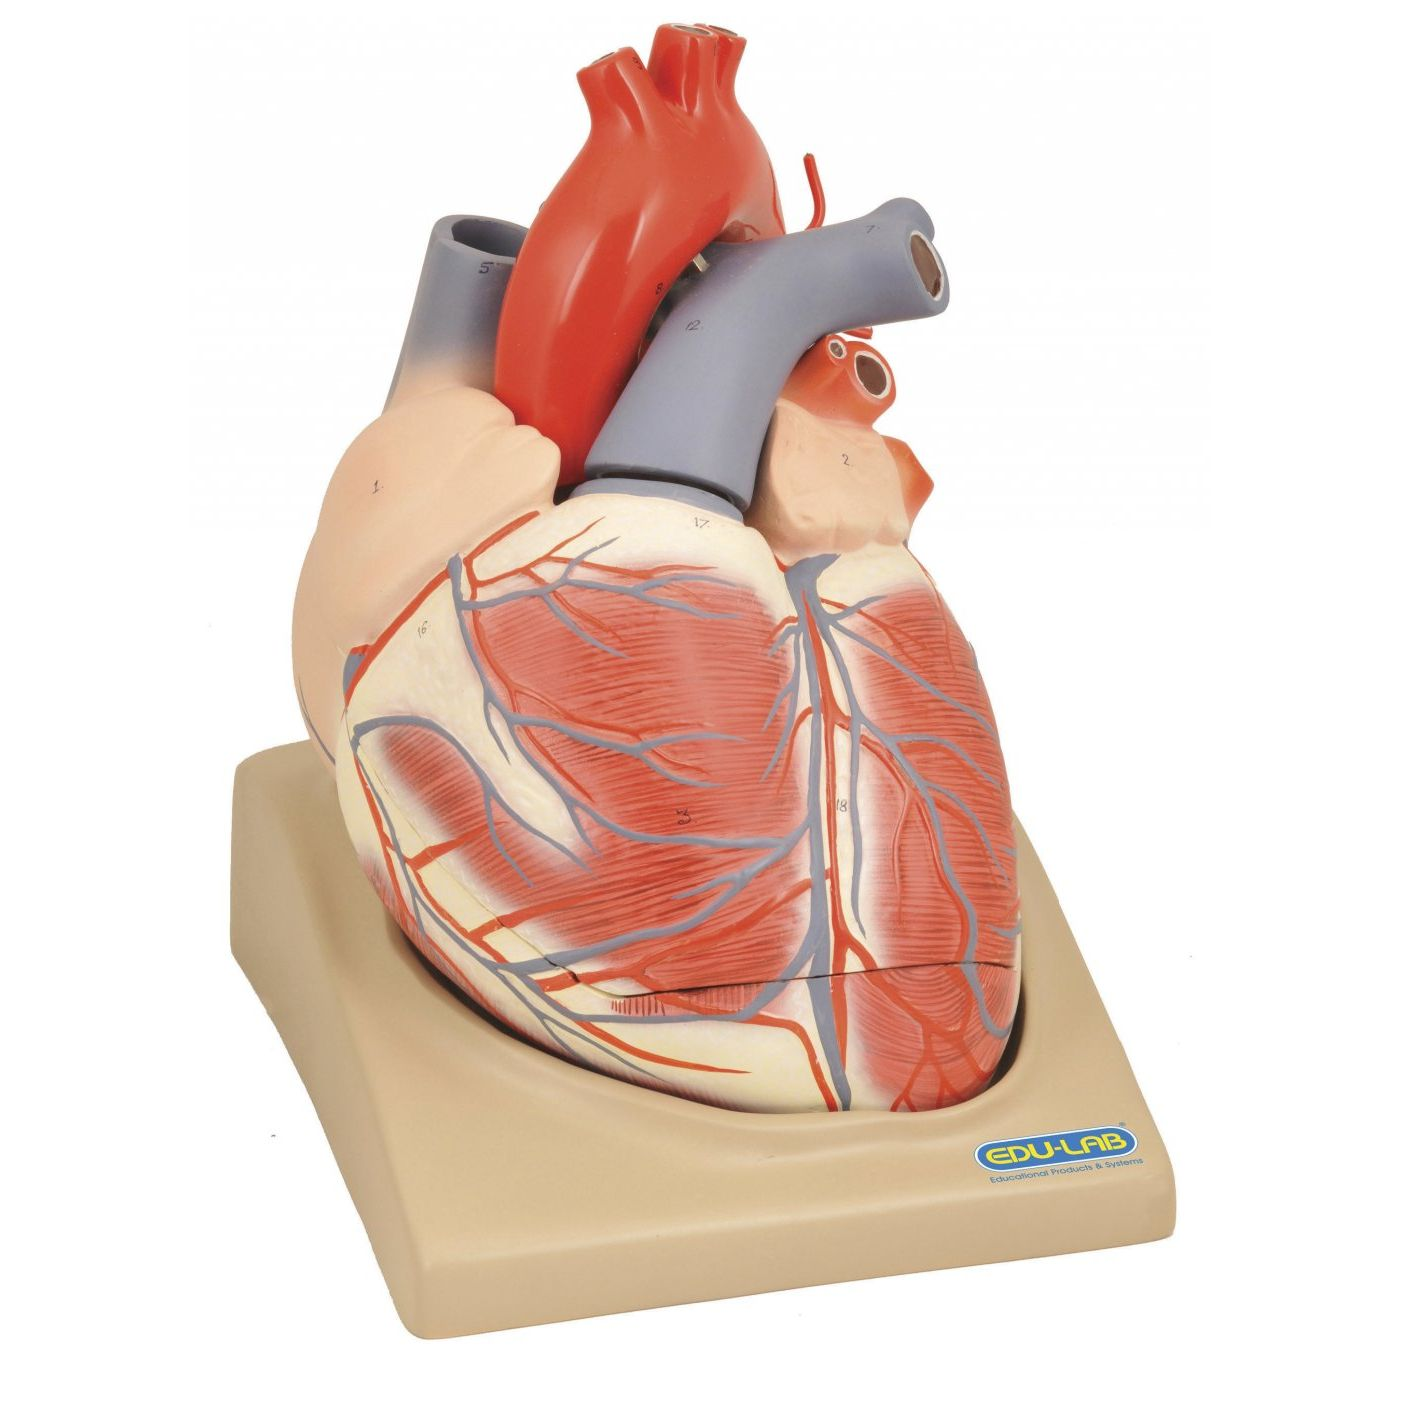 Human Heart Diagrams Schematic Diagram Parts Of A The Model Extra Large 2 4 Sports Supports